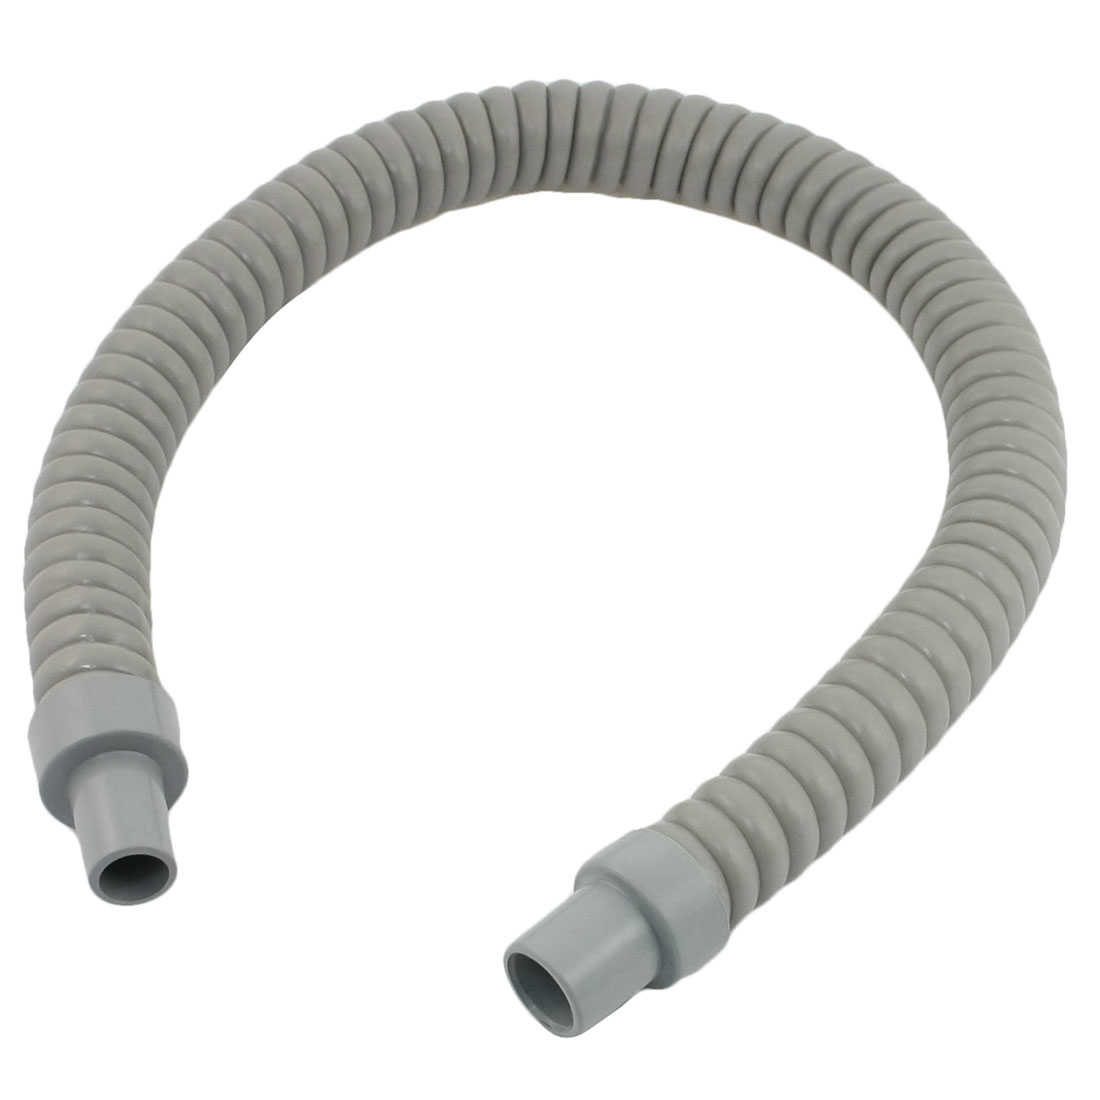 Unique Bargains 23.6' 60cm Length Gray Drain Hose Replacement for Air Conditioner